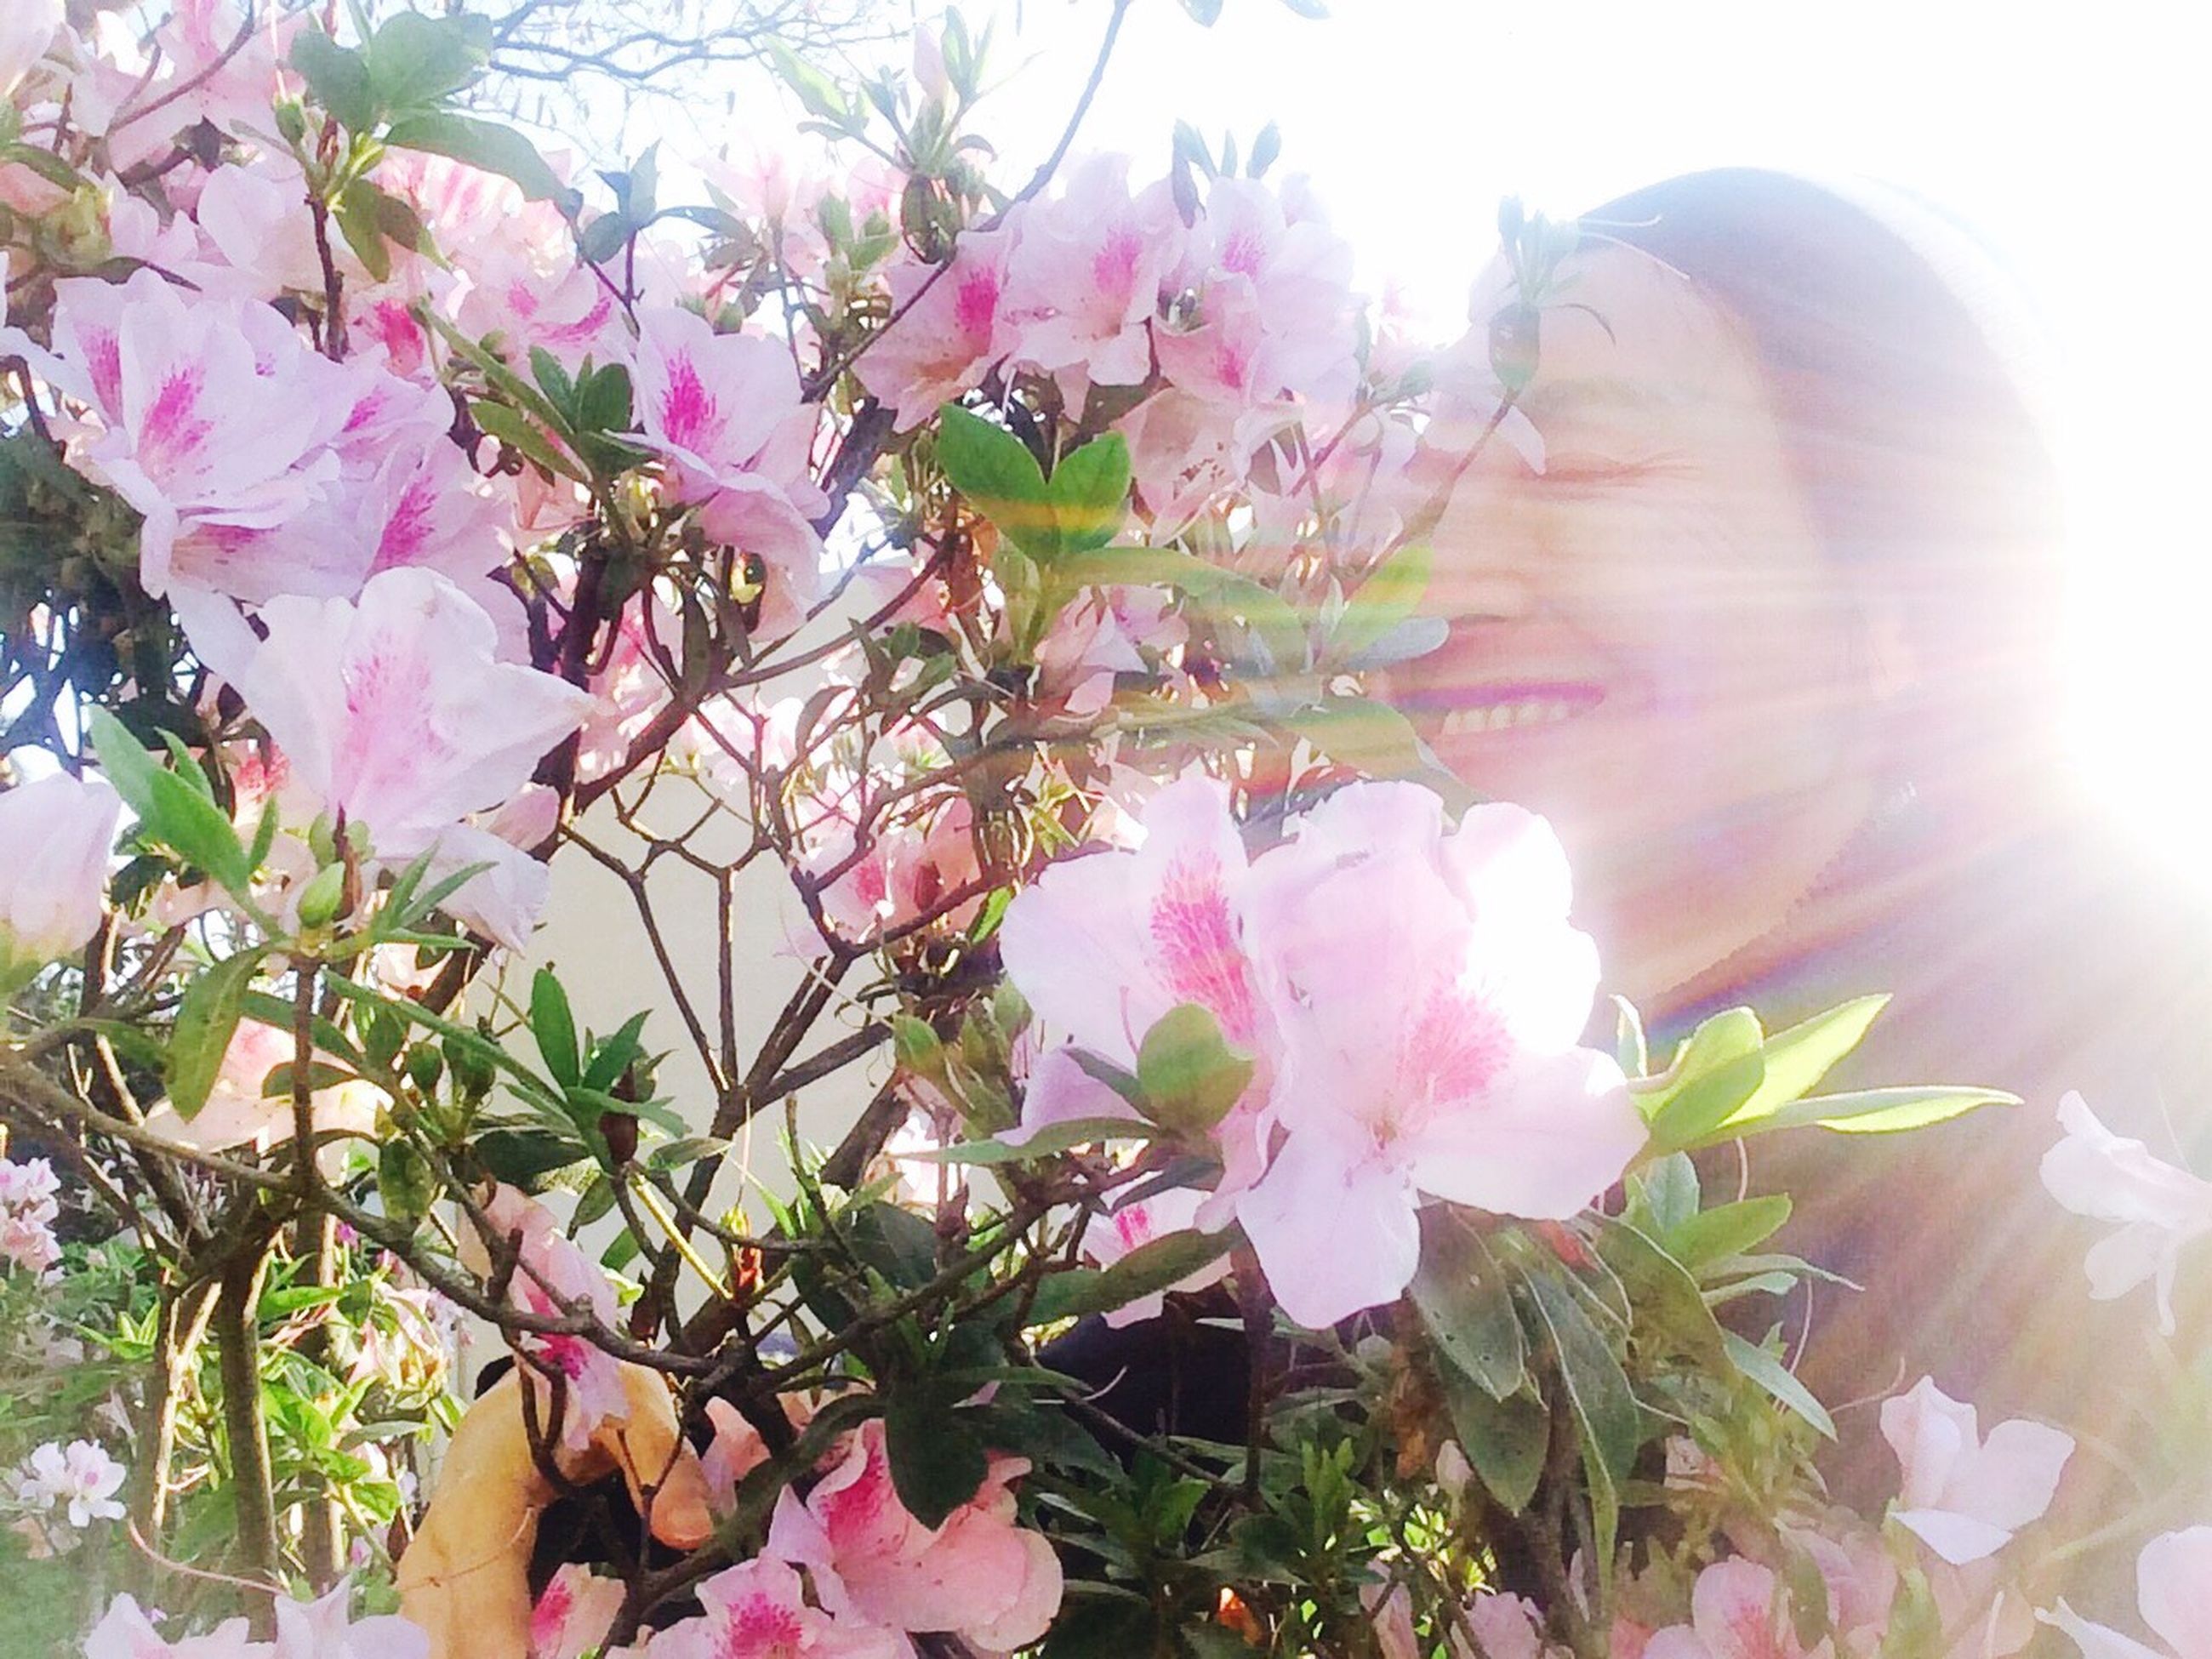 flower, sunbeam, sun, petal, sunlight, fragility, low angle view, freshness, pink color, growth, lens flare, tree, beauty in nature, nature, plant, blooming, day, sky, flower head, in bloom